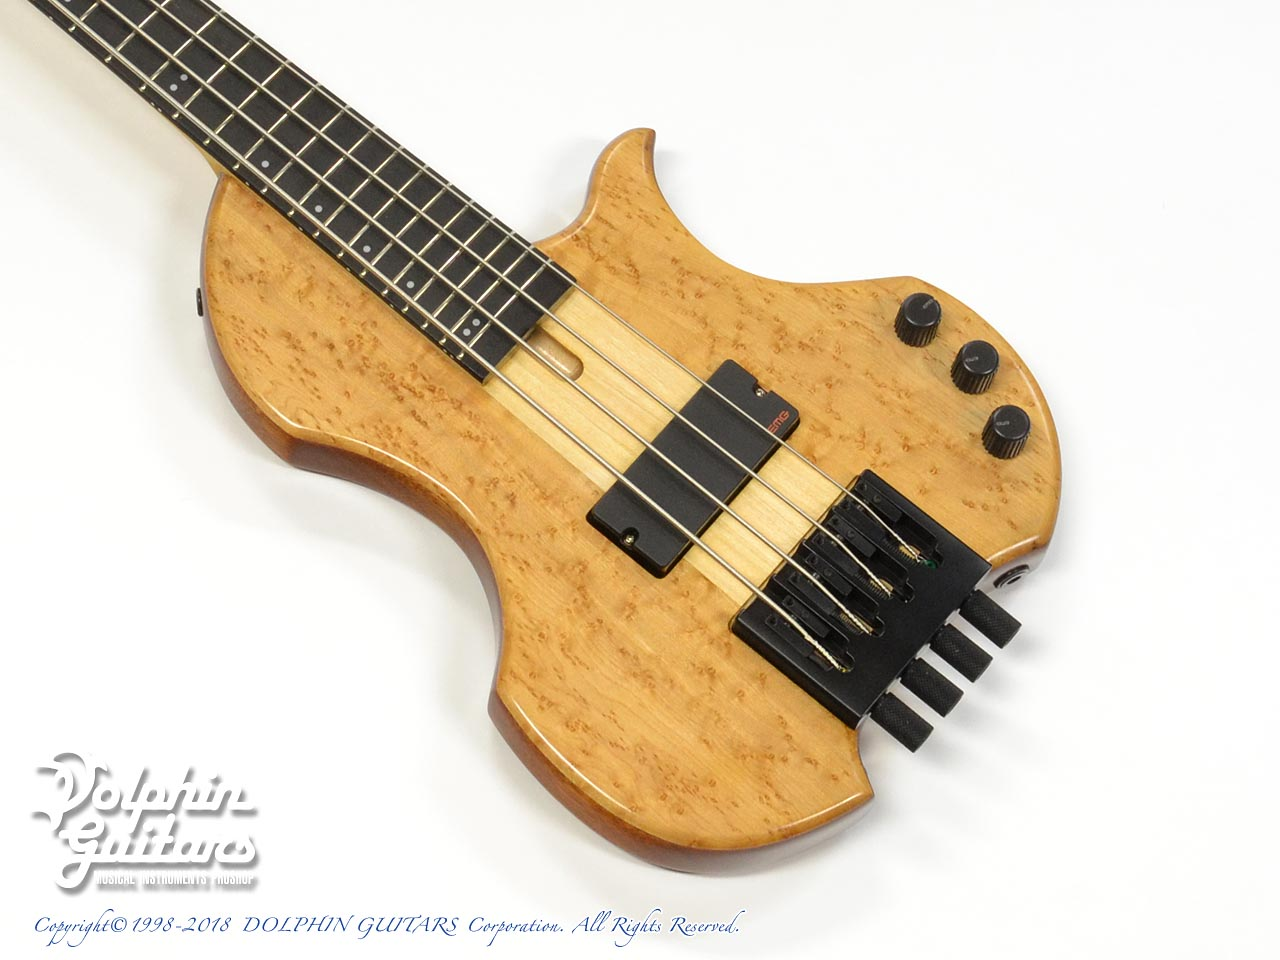 Charo's: CH-B4 Compact Headless Bass (Birdseye Maple & Mahogany) (1)